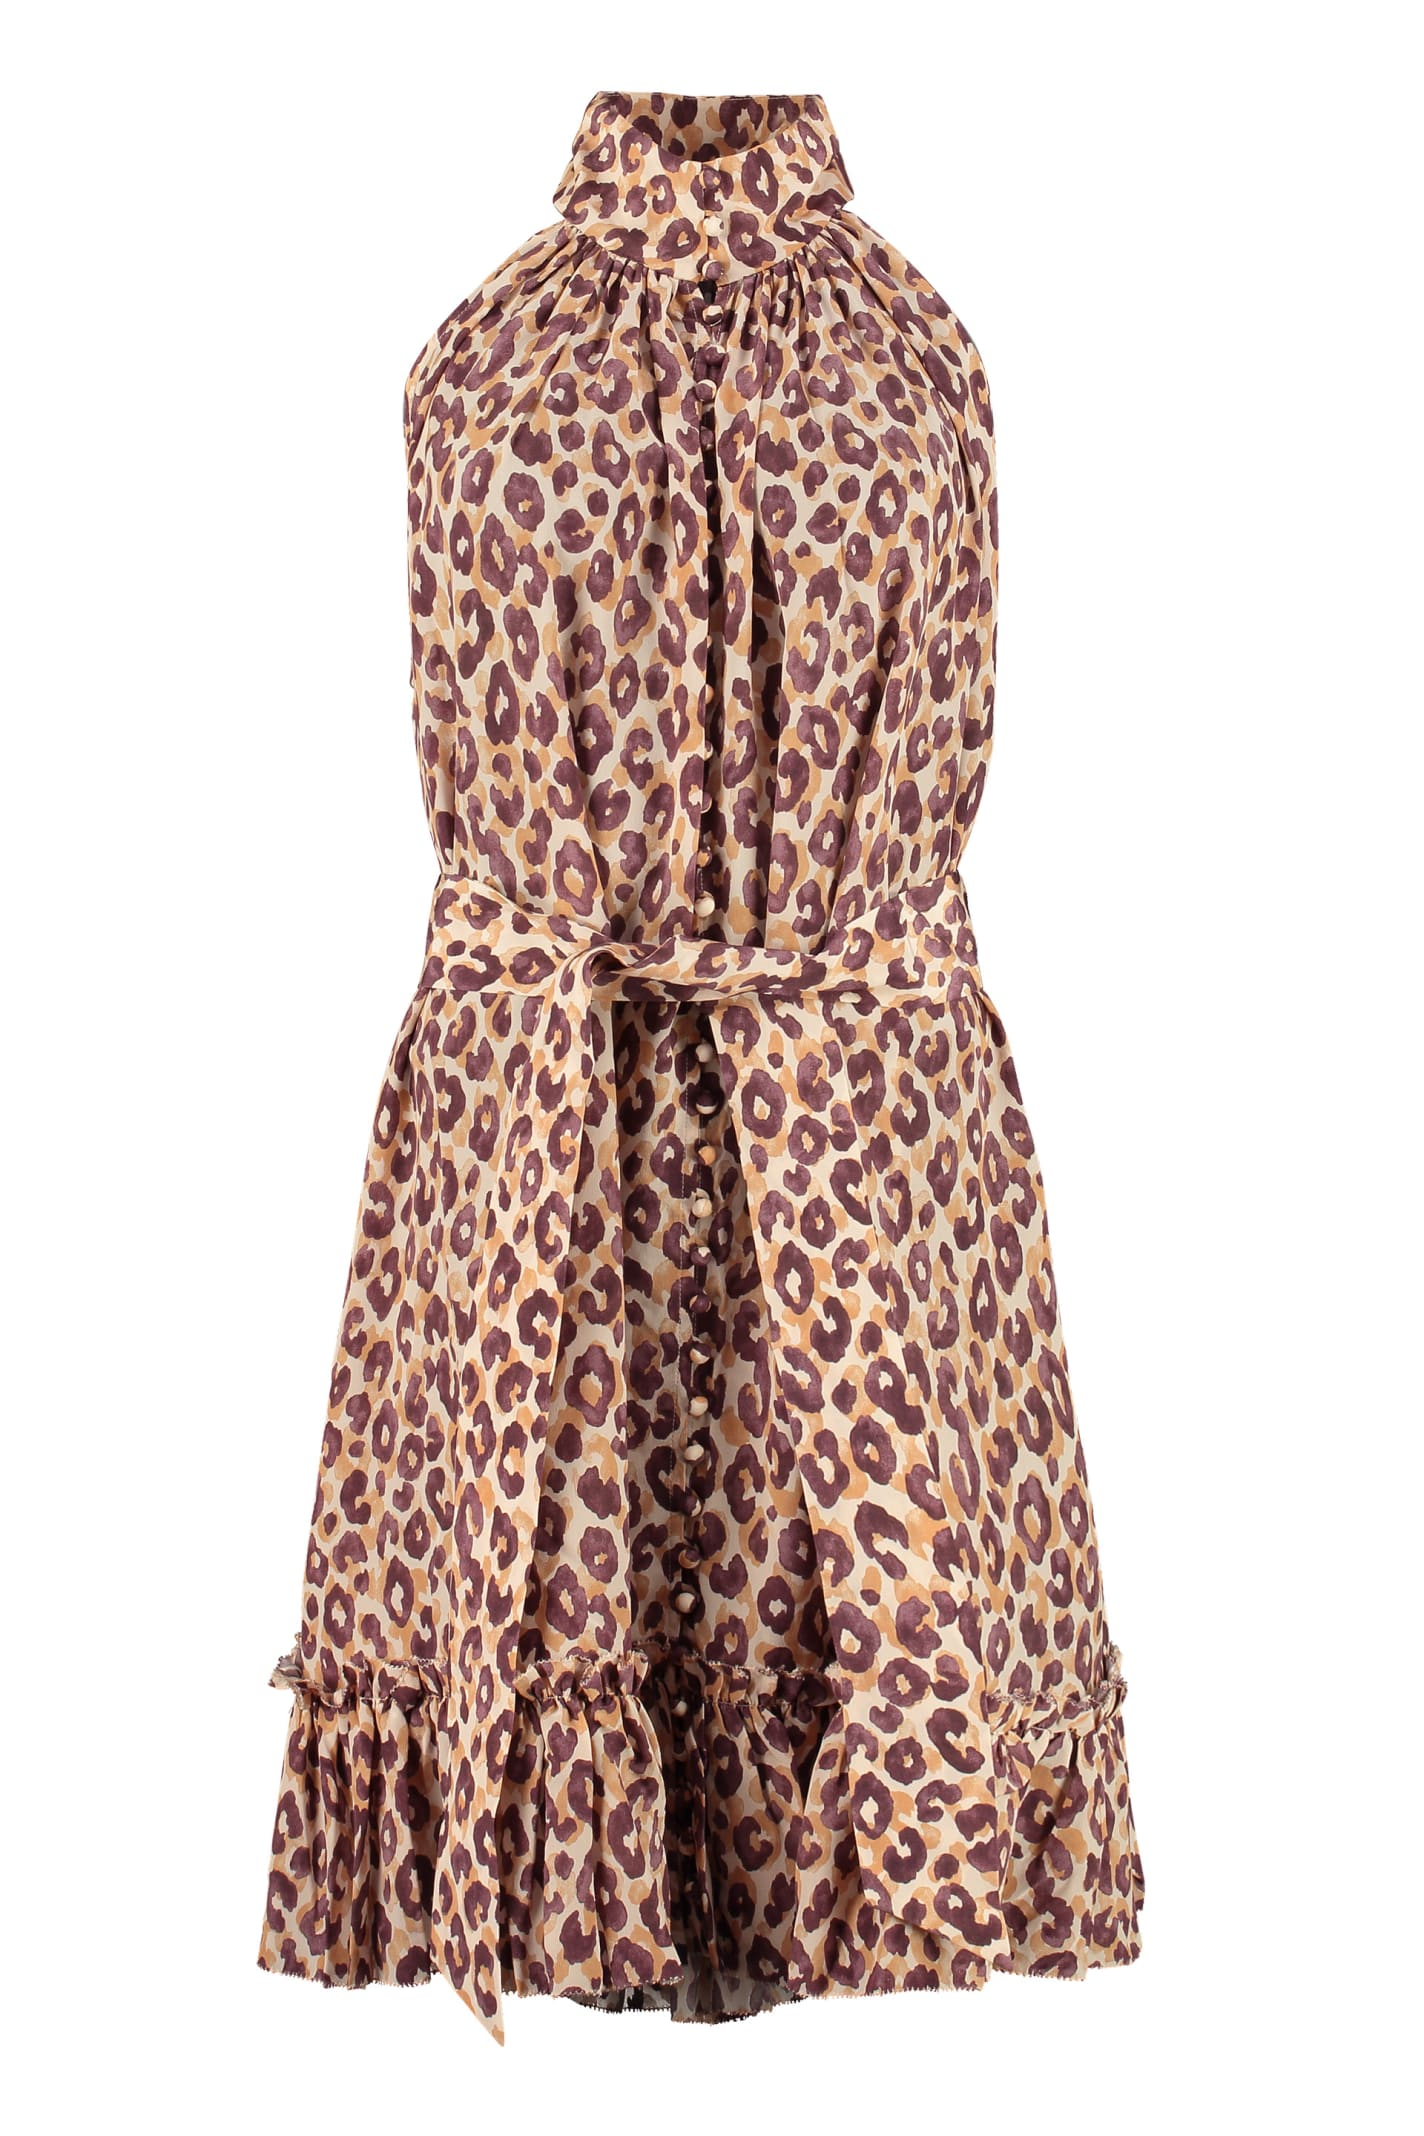 Buy Zimmermann Leopard-print Silk Dress online, shop Zimmermann with free shipping